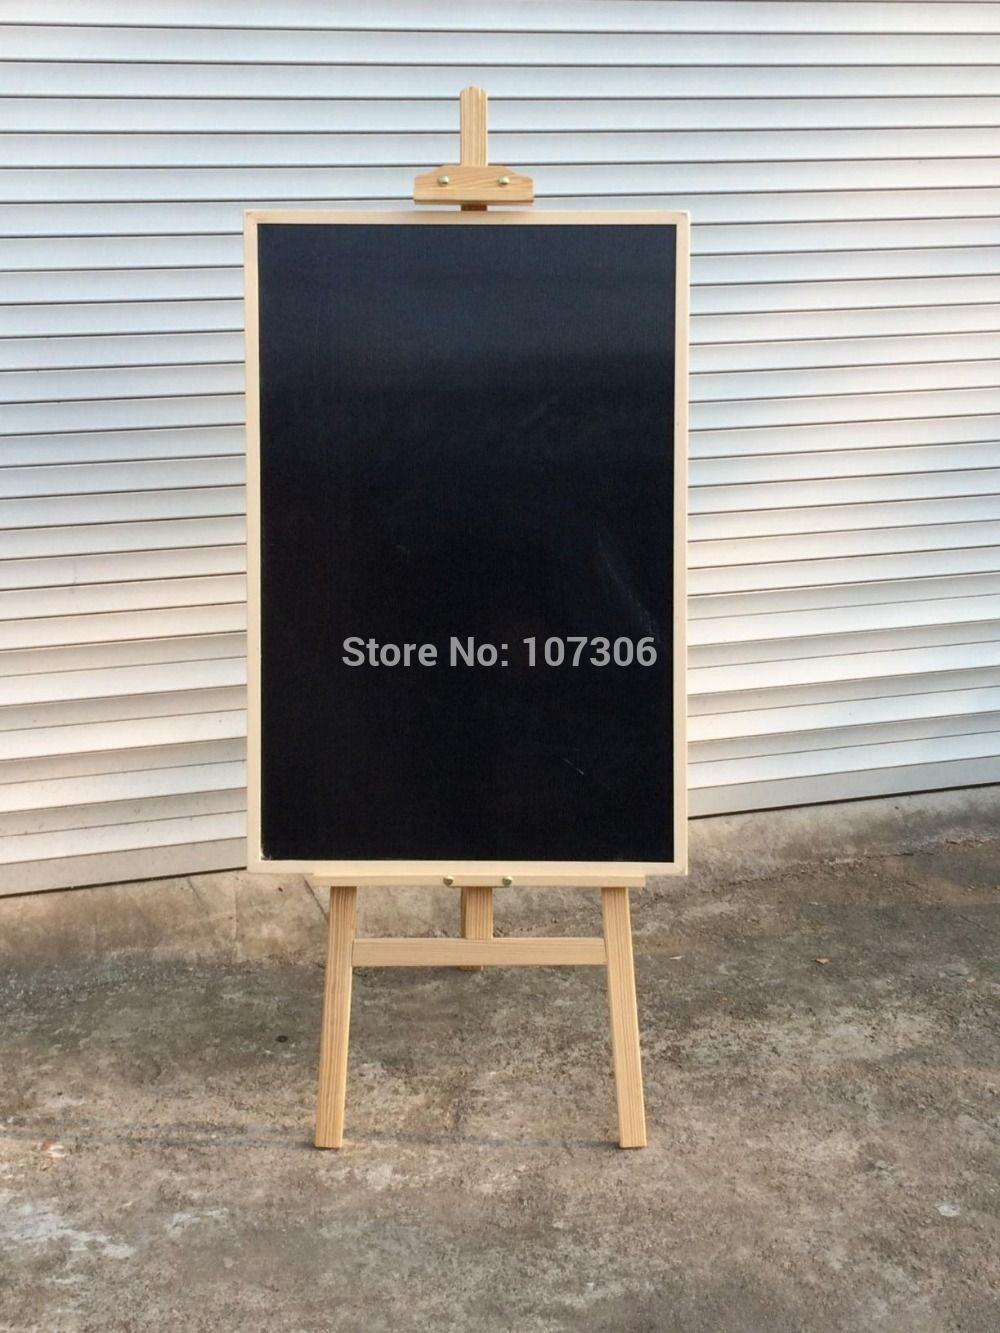 Blackboard New 185mmx85mm Mini Wooden Blackboard Chalkboard Hanging Memo Message Wedding Decor Board Holder